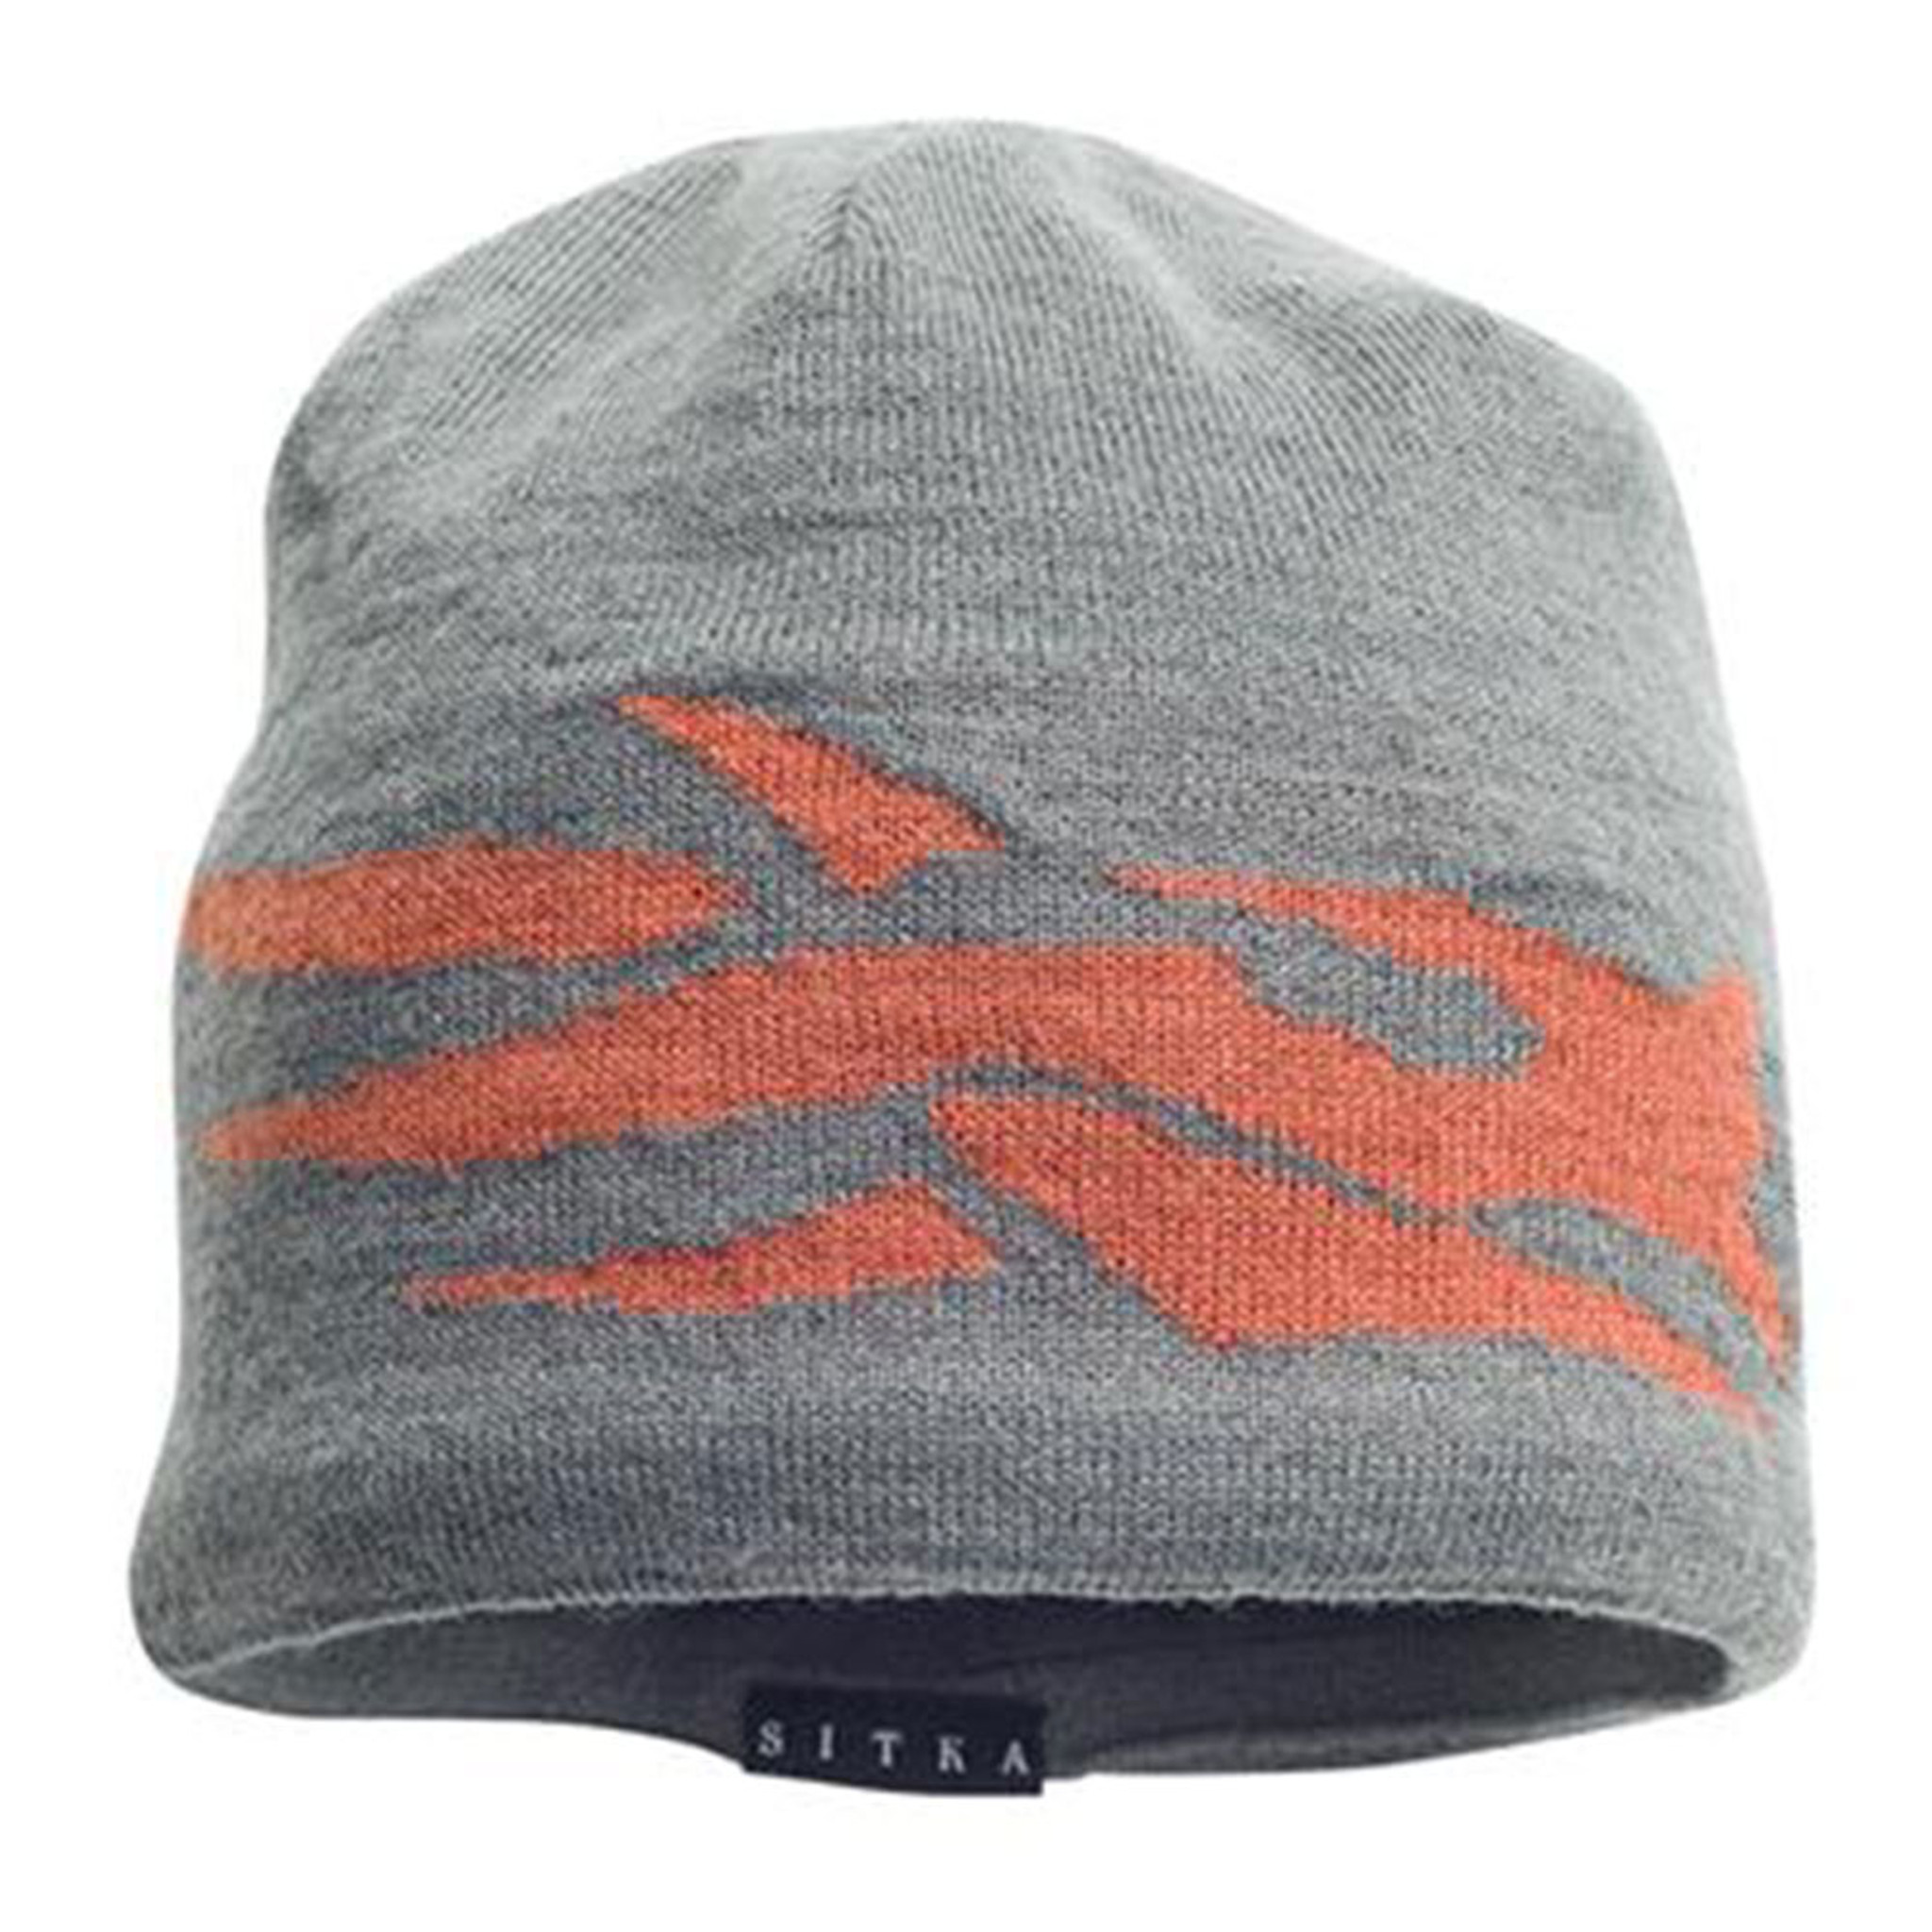 57dcedf7 SITKA LARGE LOGO BEANIE CARGO - Heights Outdoors